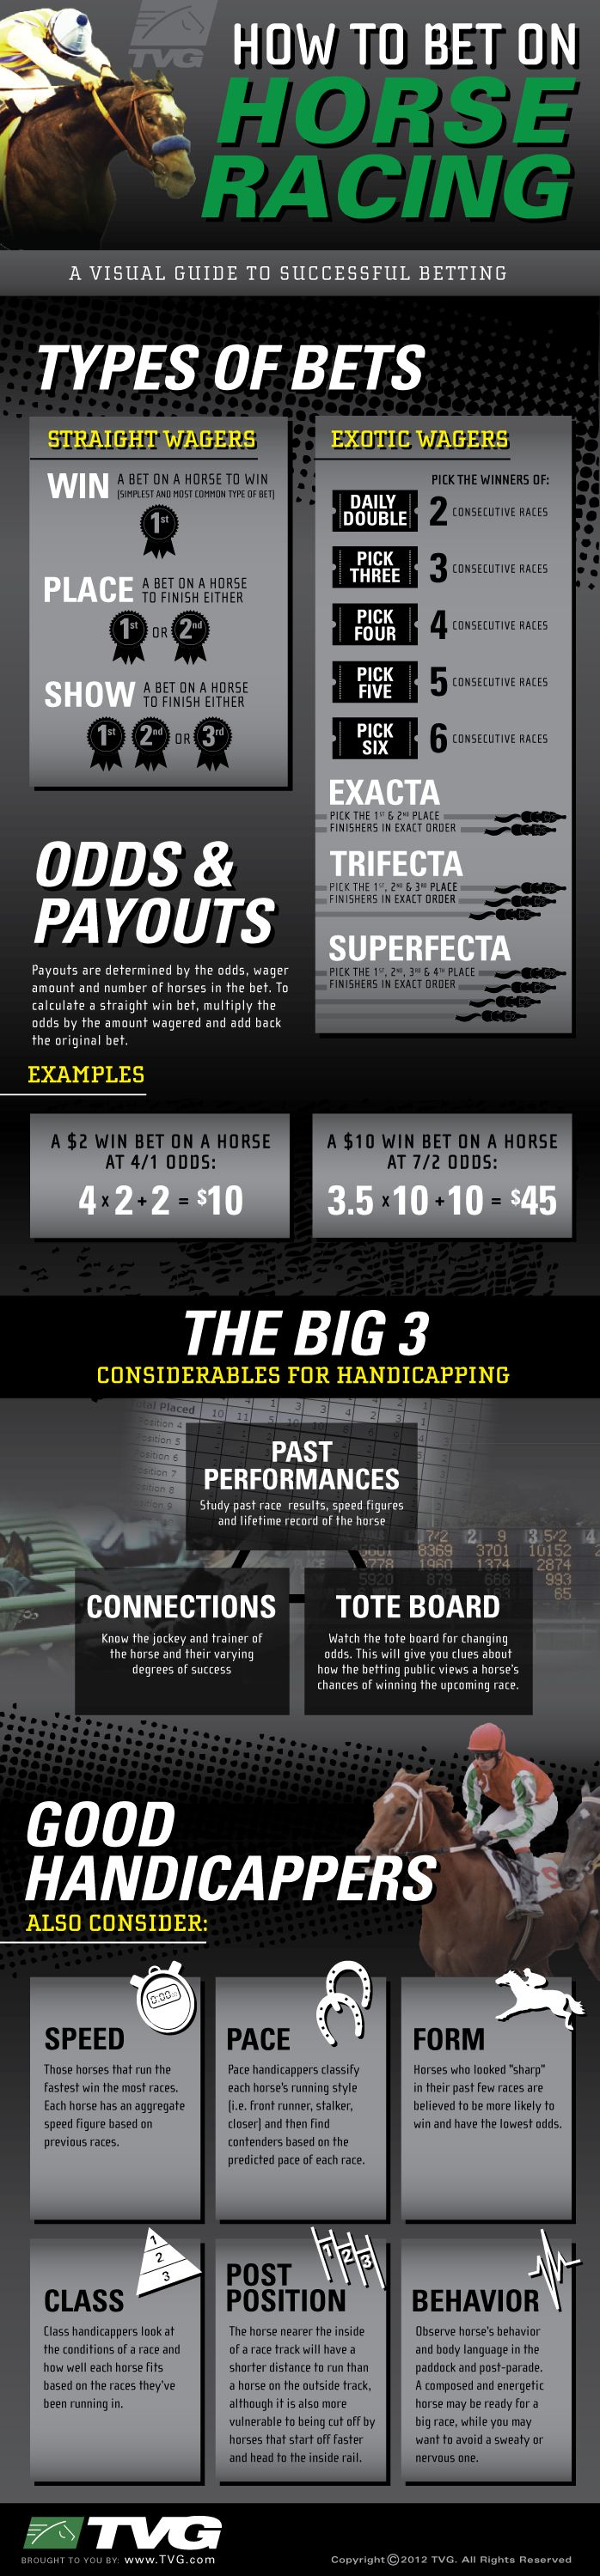 How To Bet On Horse Racing [INFOGRAPHIC]